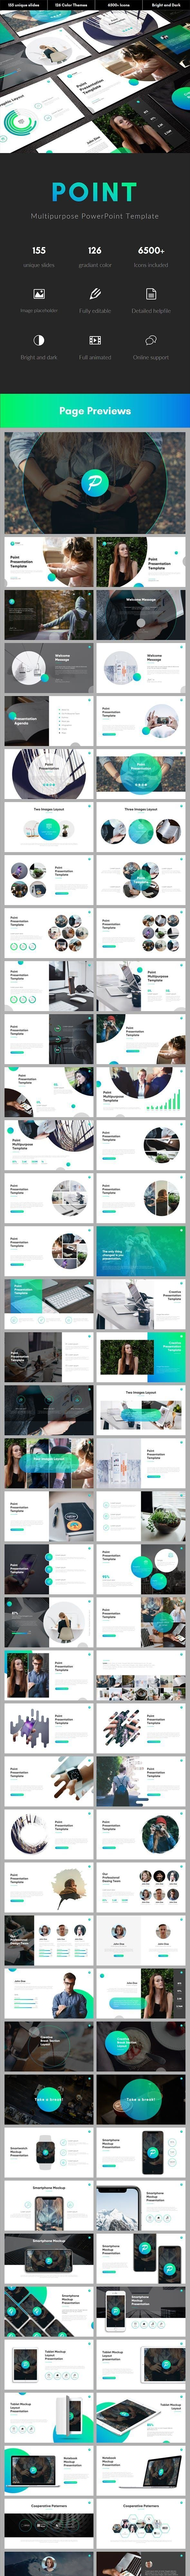 Point Multipurpose PowerPoint Template